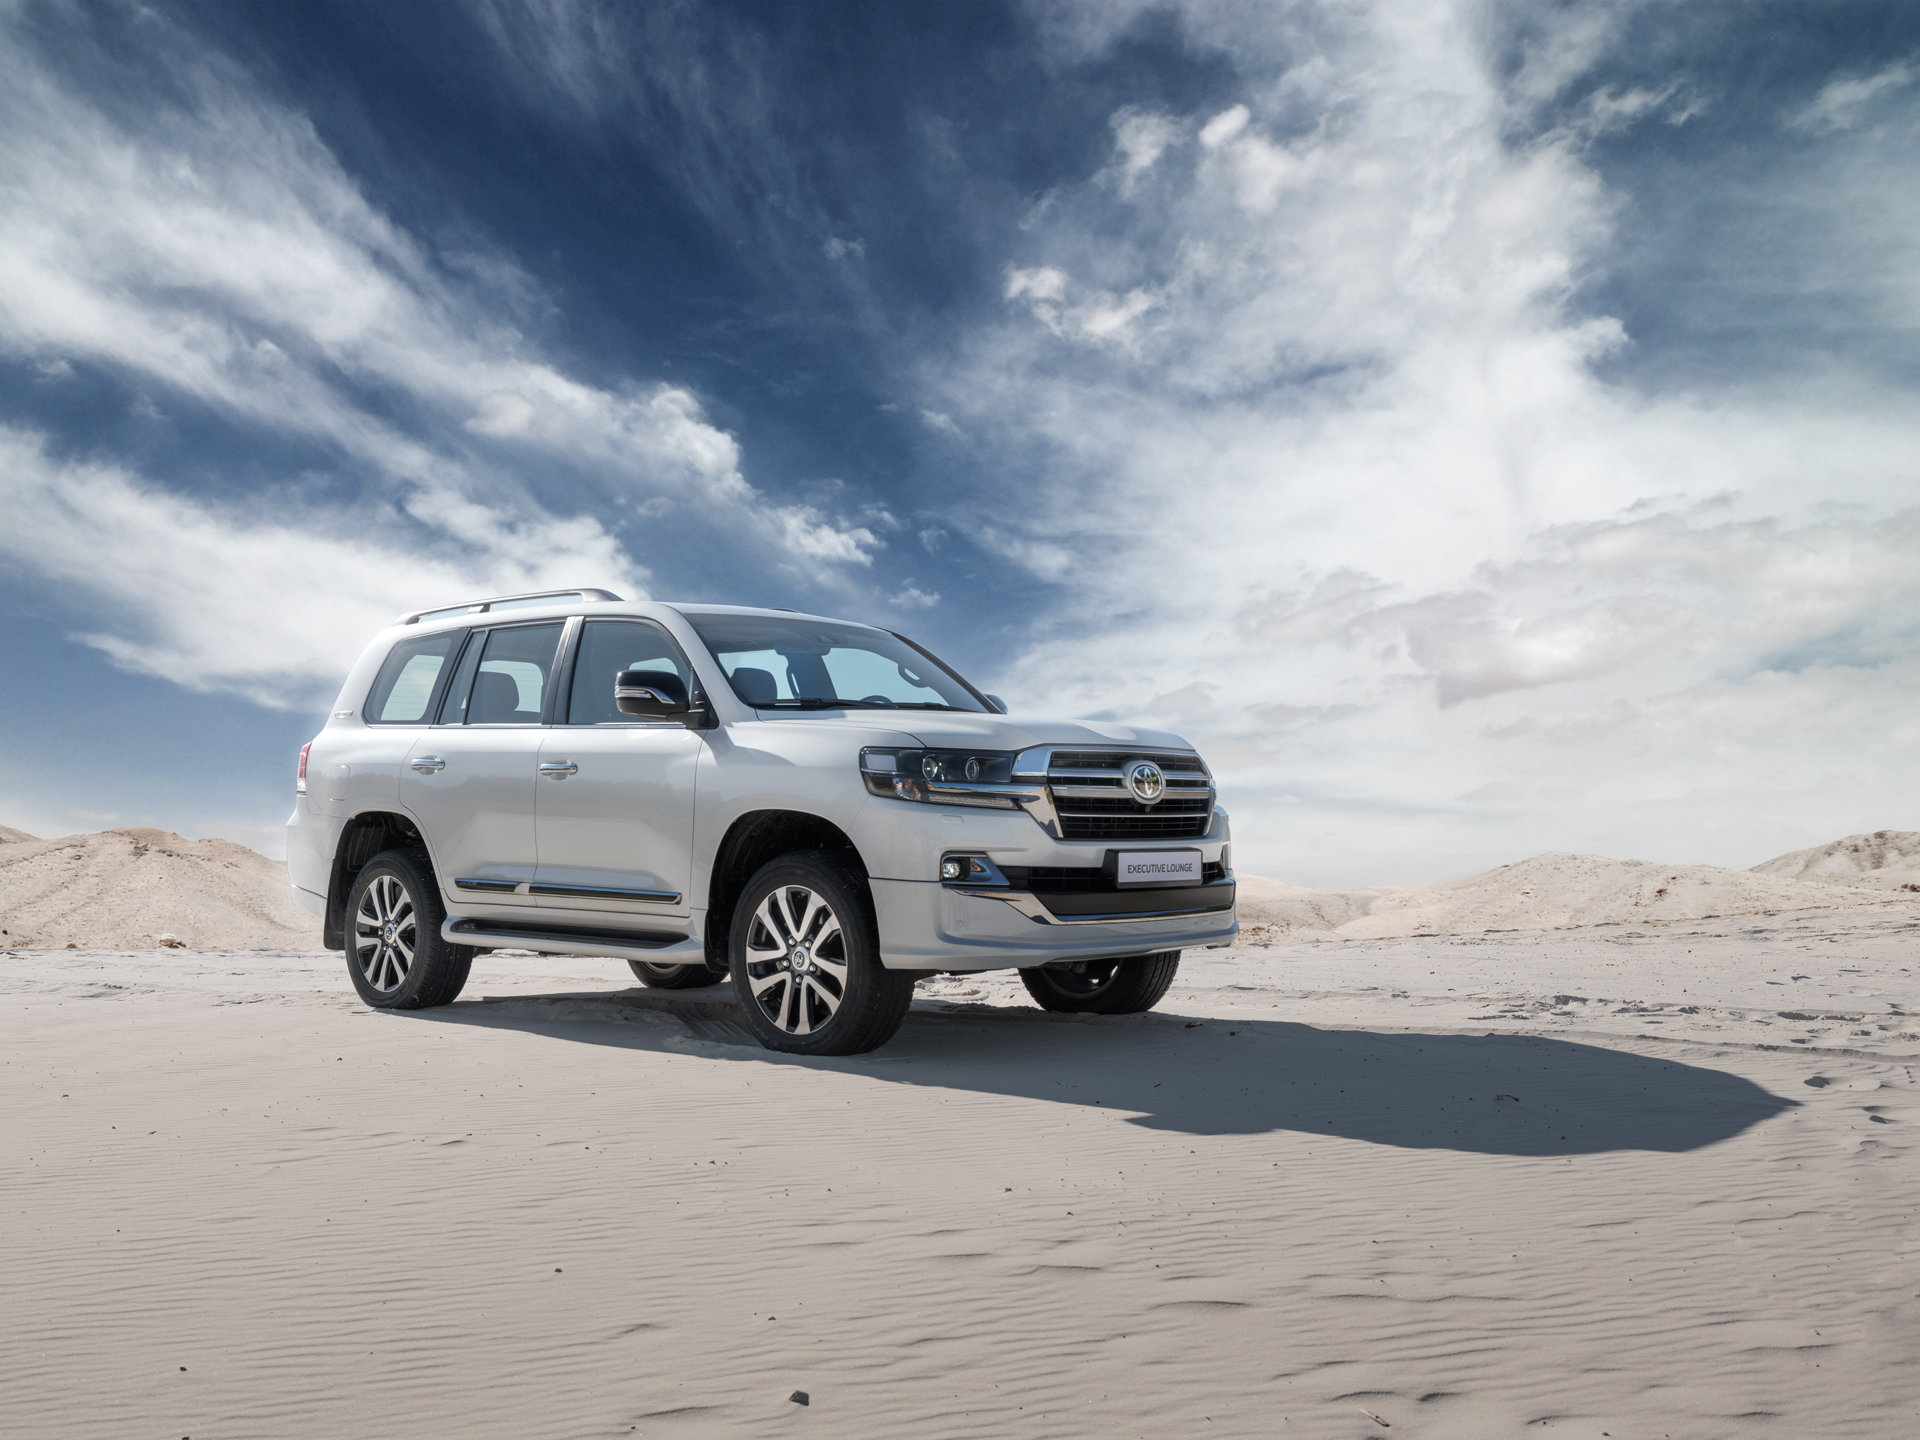 Toyota Land Cruiser 200 2020 Green Phone  Desktop Wallpapers  Pictures  Photos  Bckground Images